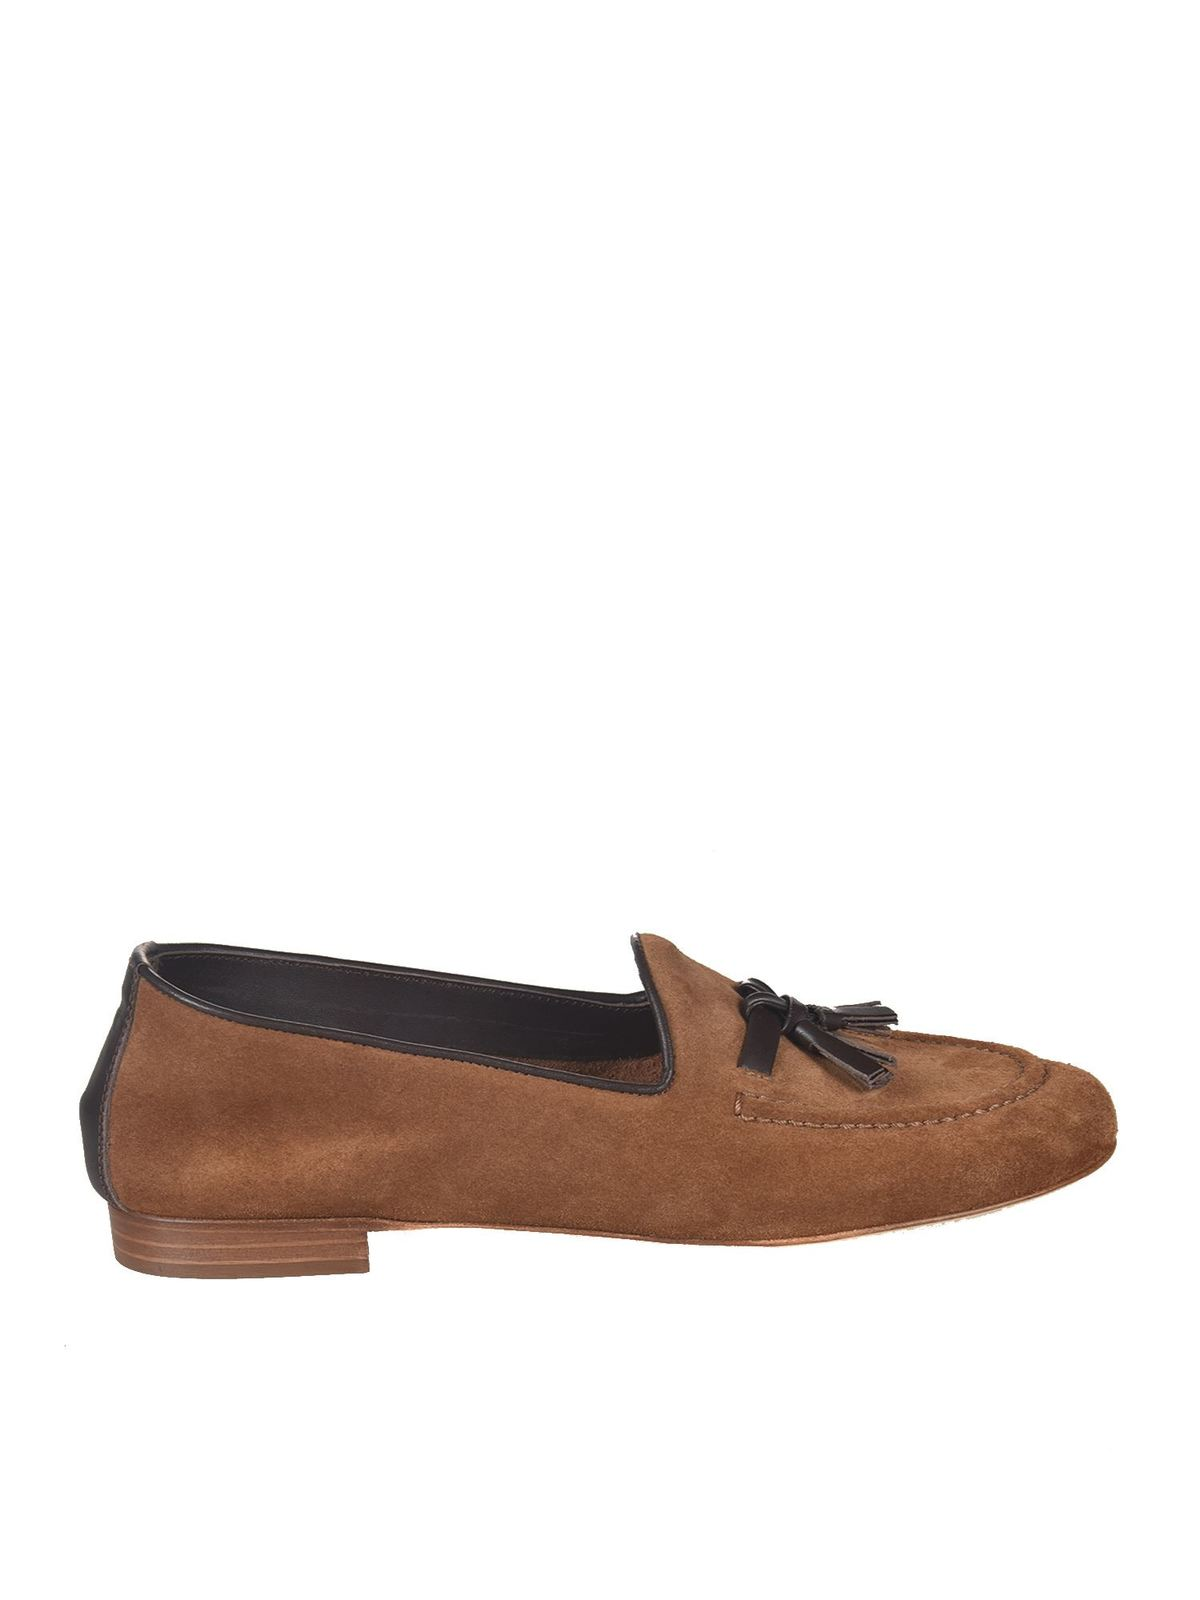 MALONE SOULIERS ALBERTO 3 LOAFERS IN BROWN